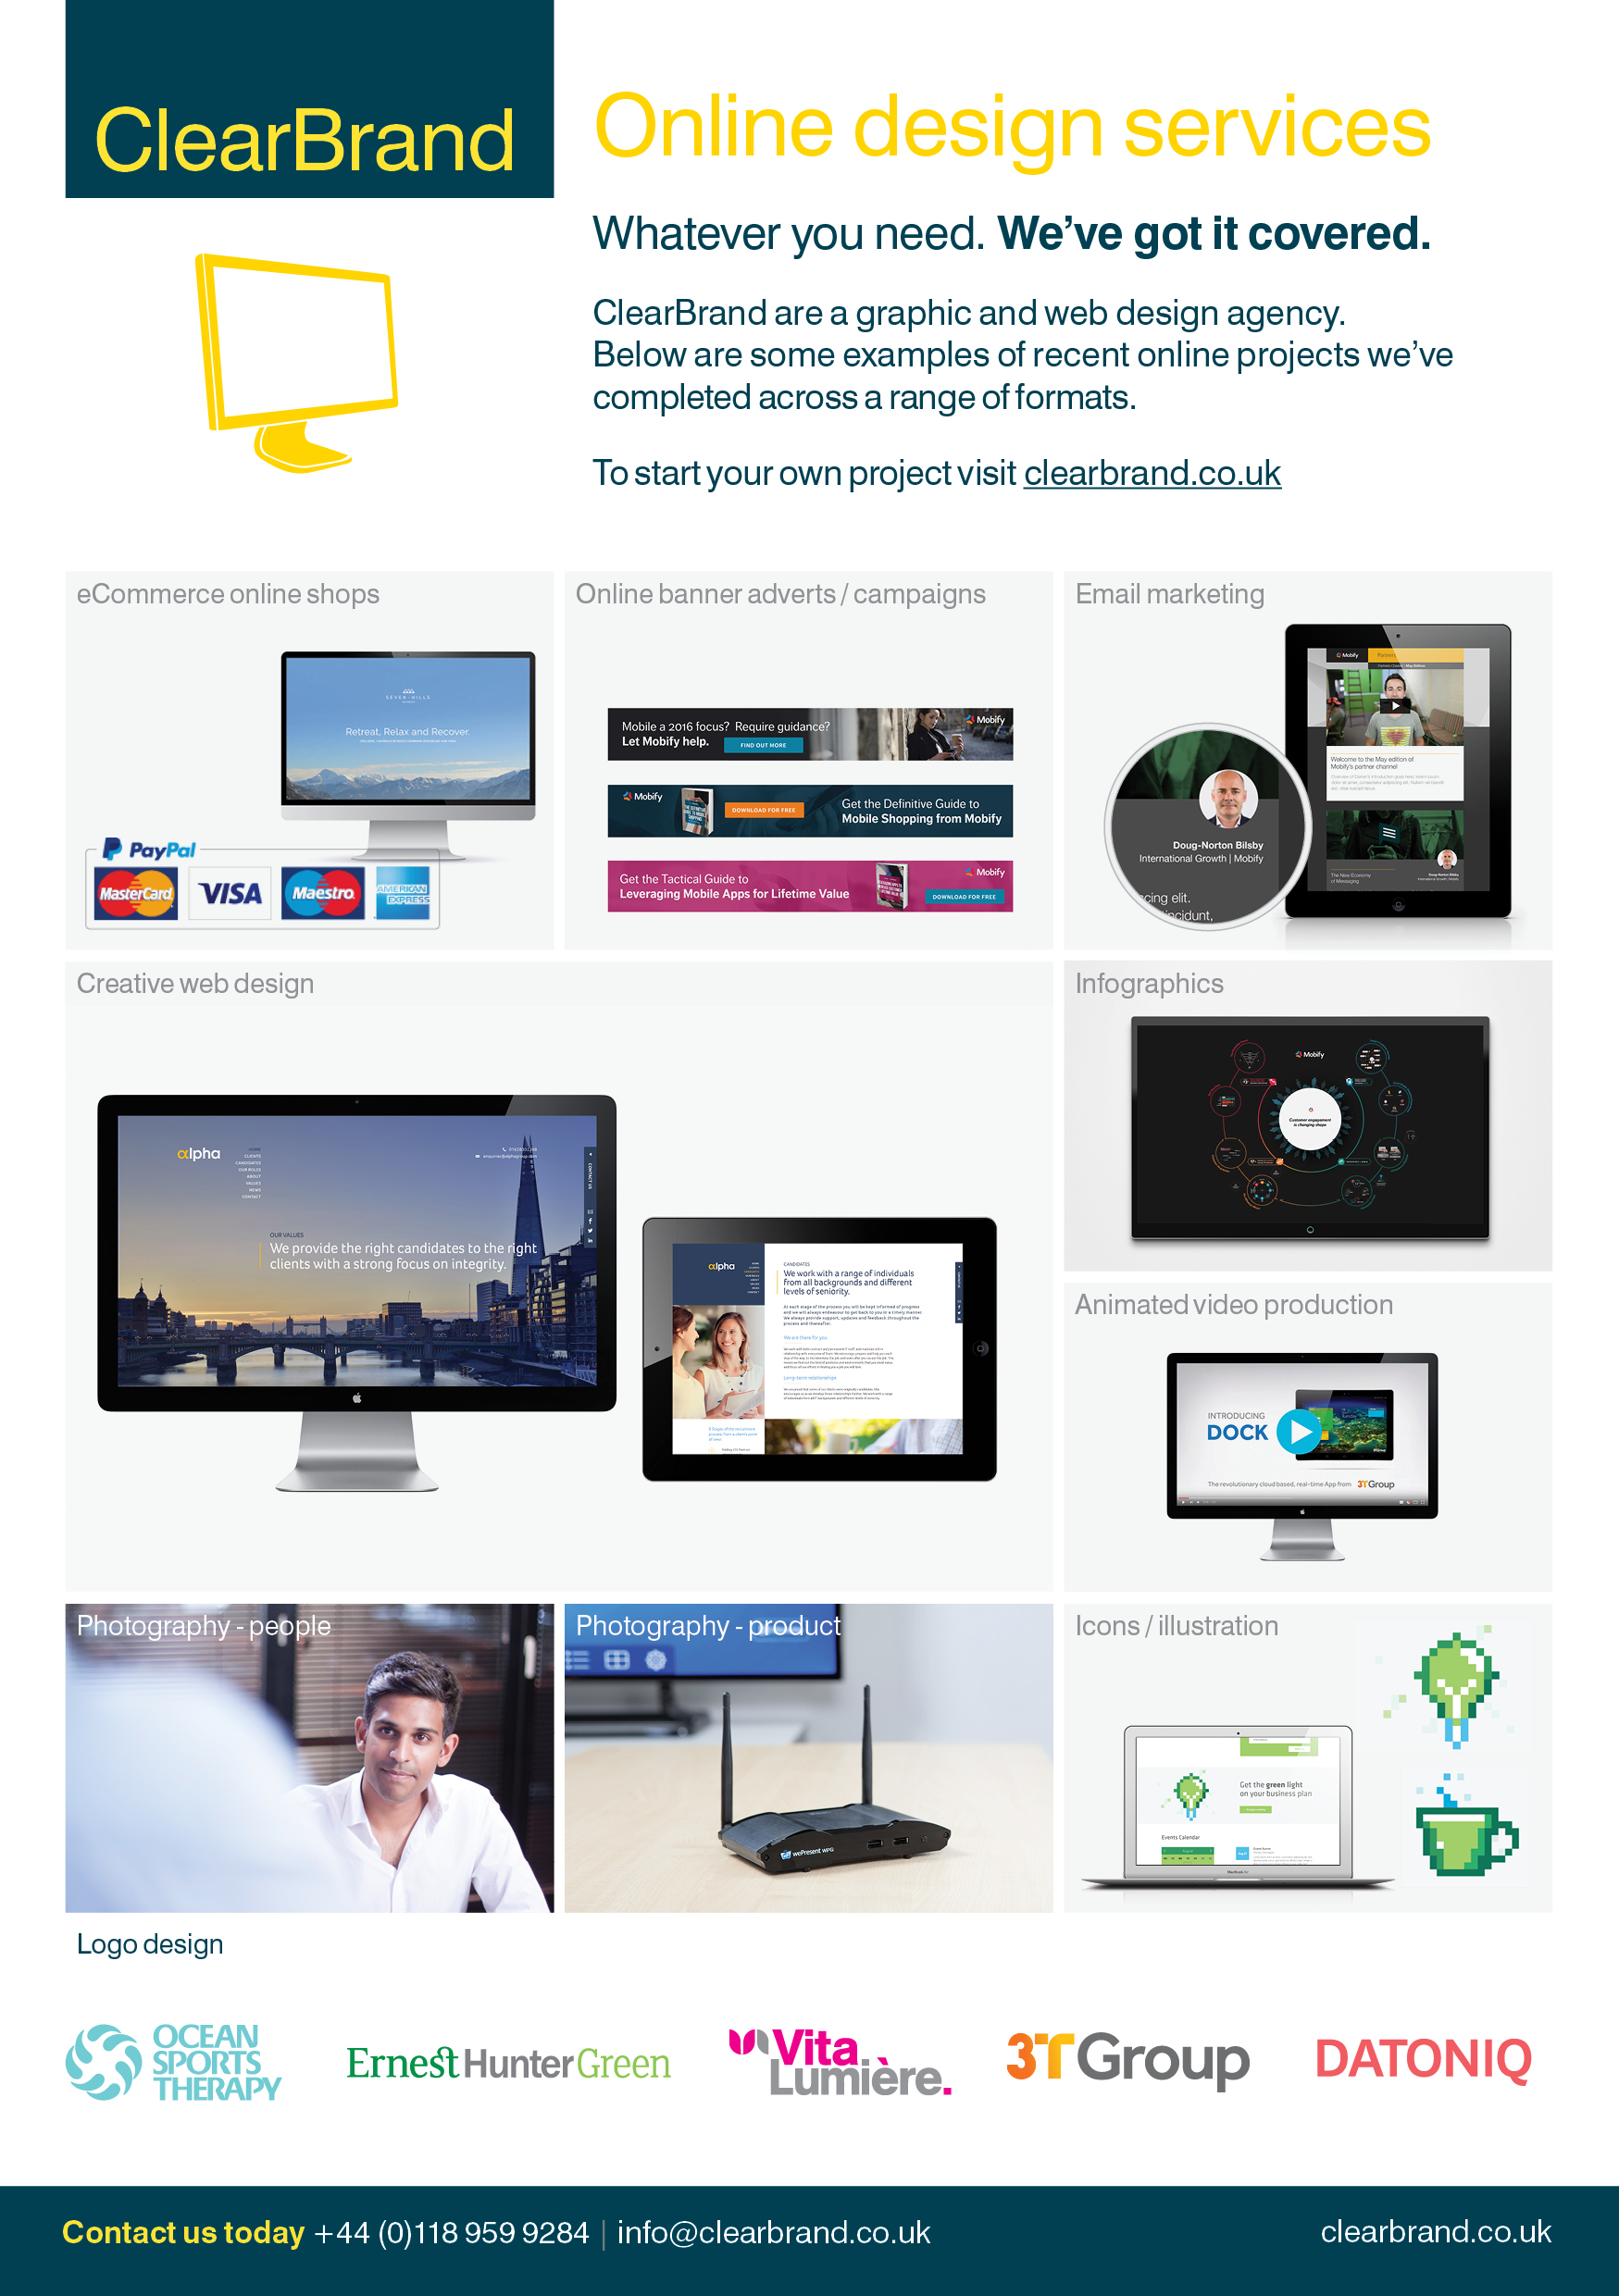 ClearBrand Online Design Service